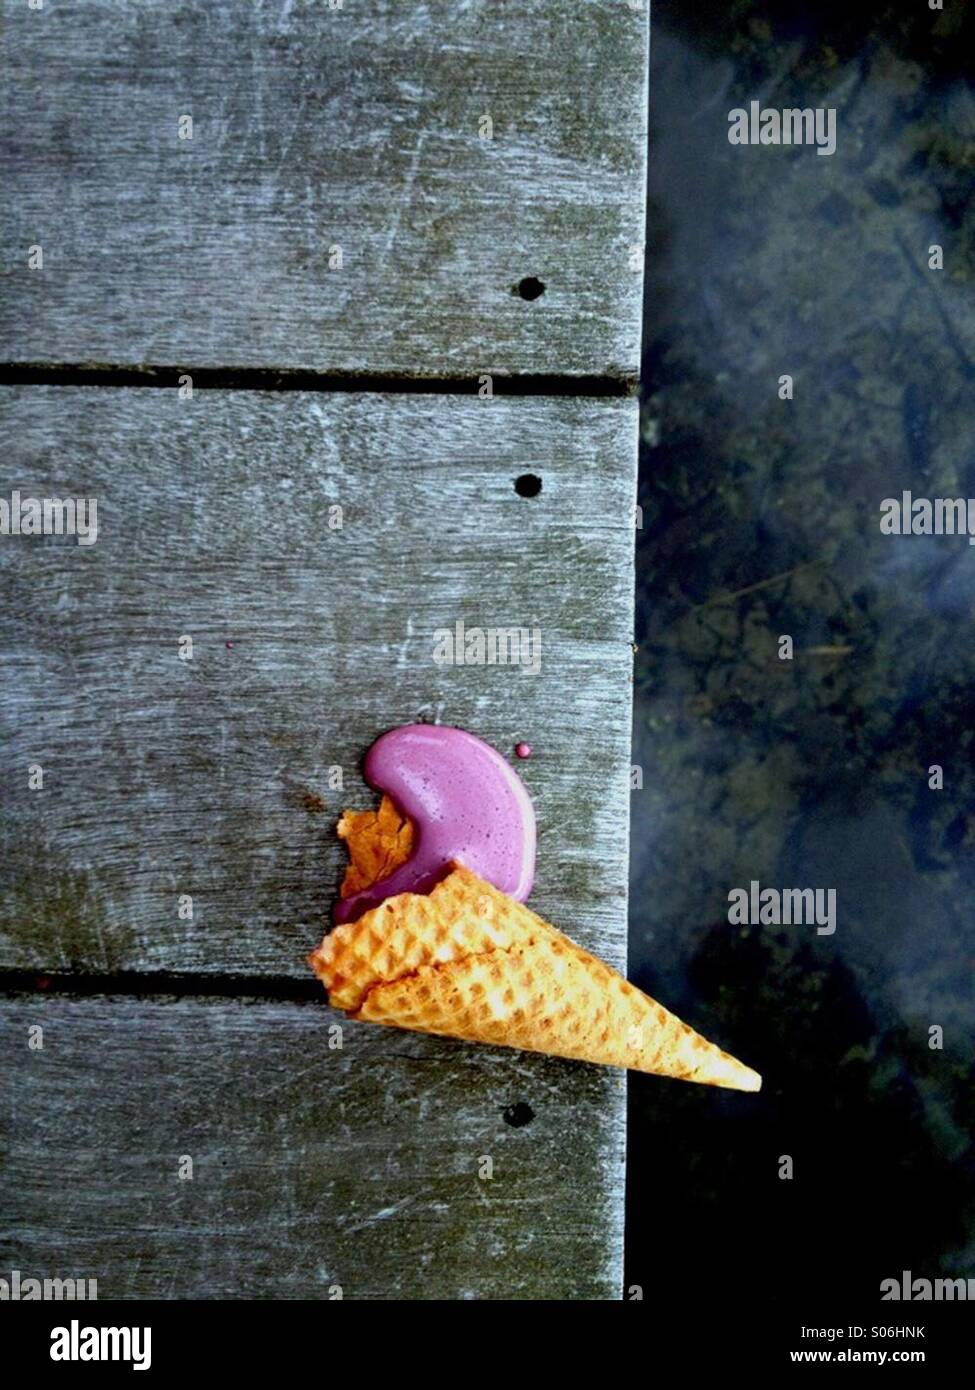 Abandonné ice cream cone Photo Stock